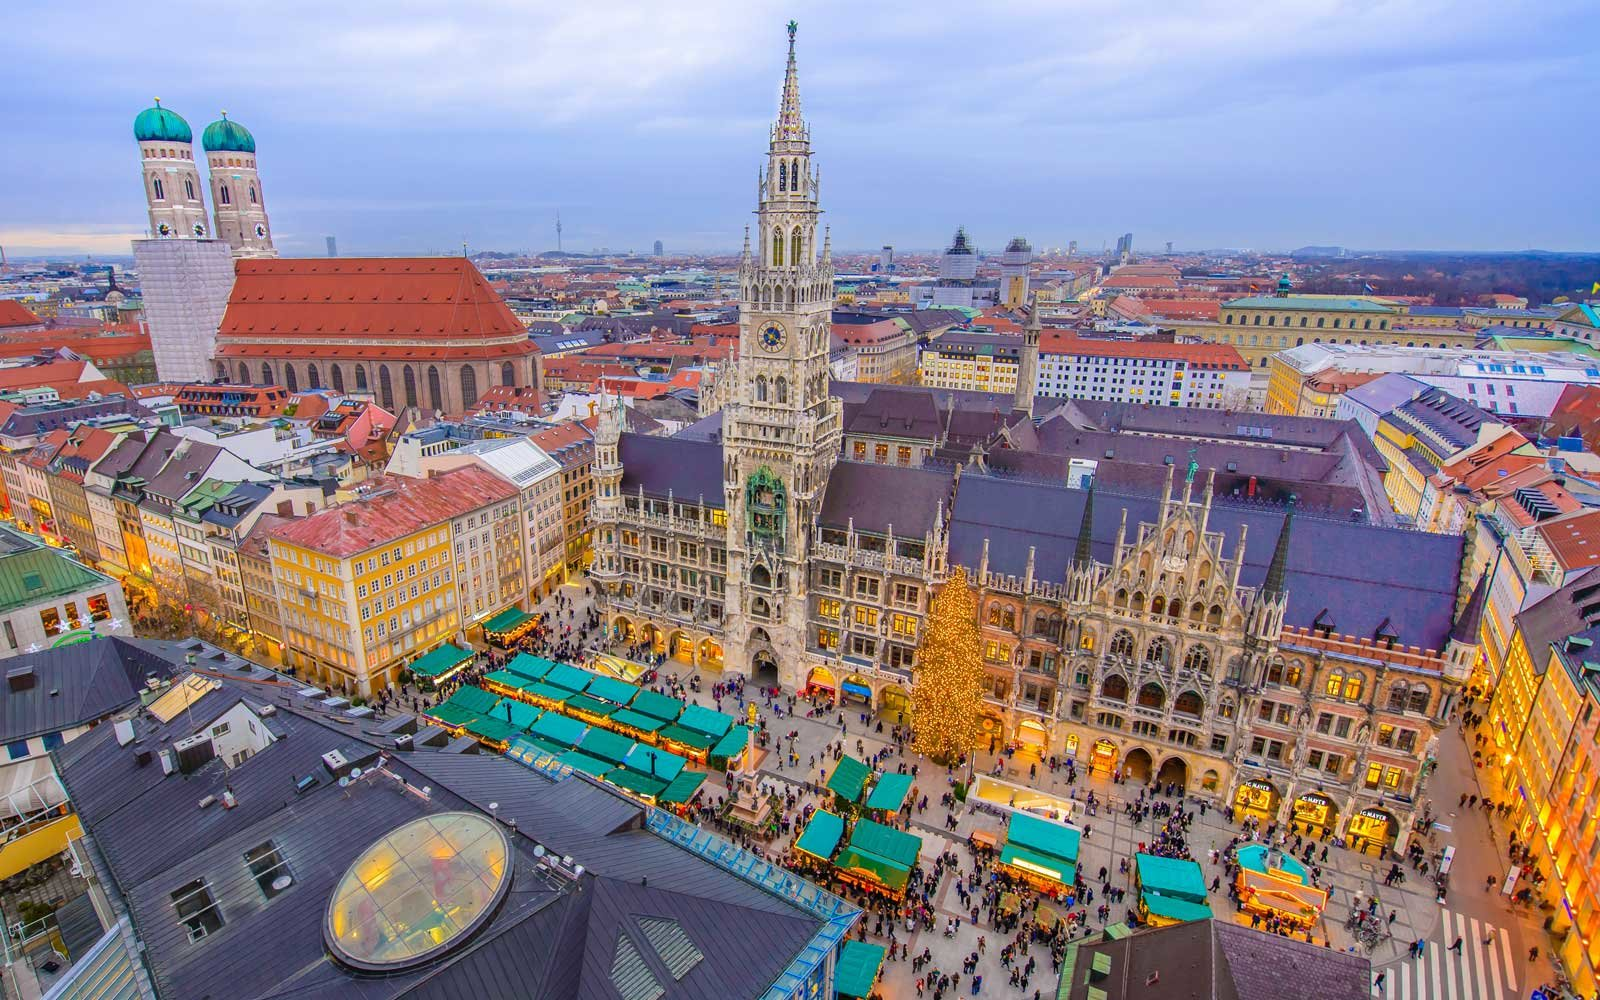 Explore some of Europe's most famous holiday markets in one trip.